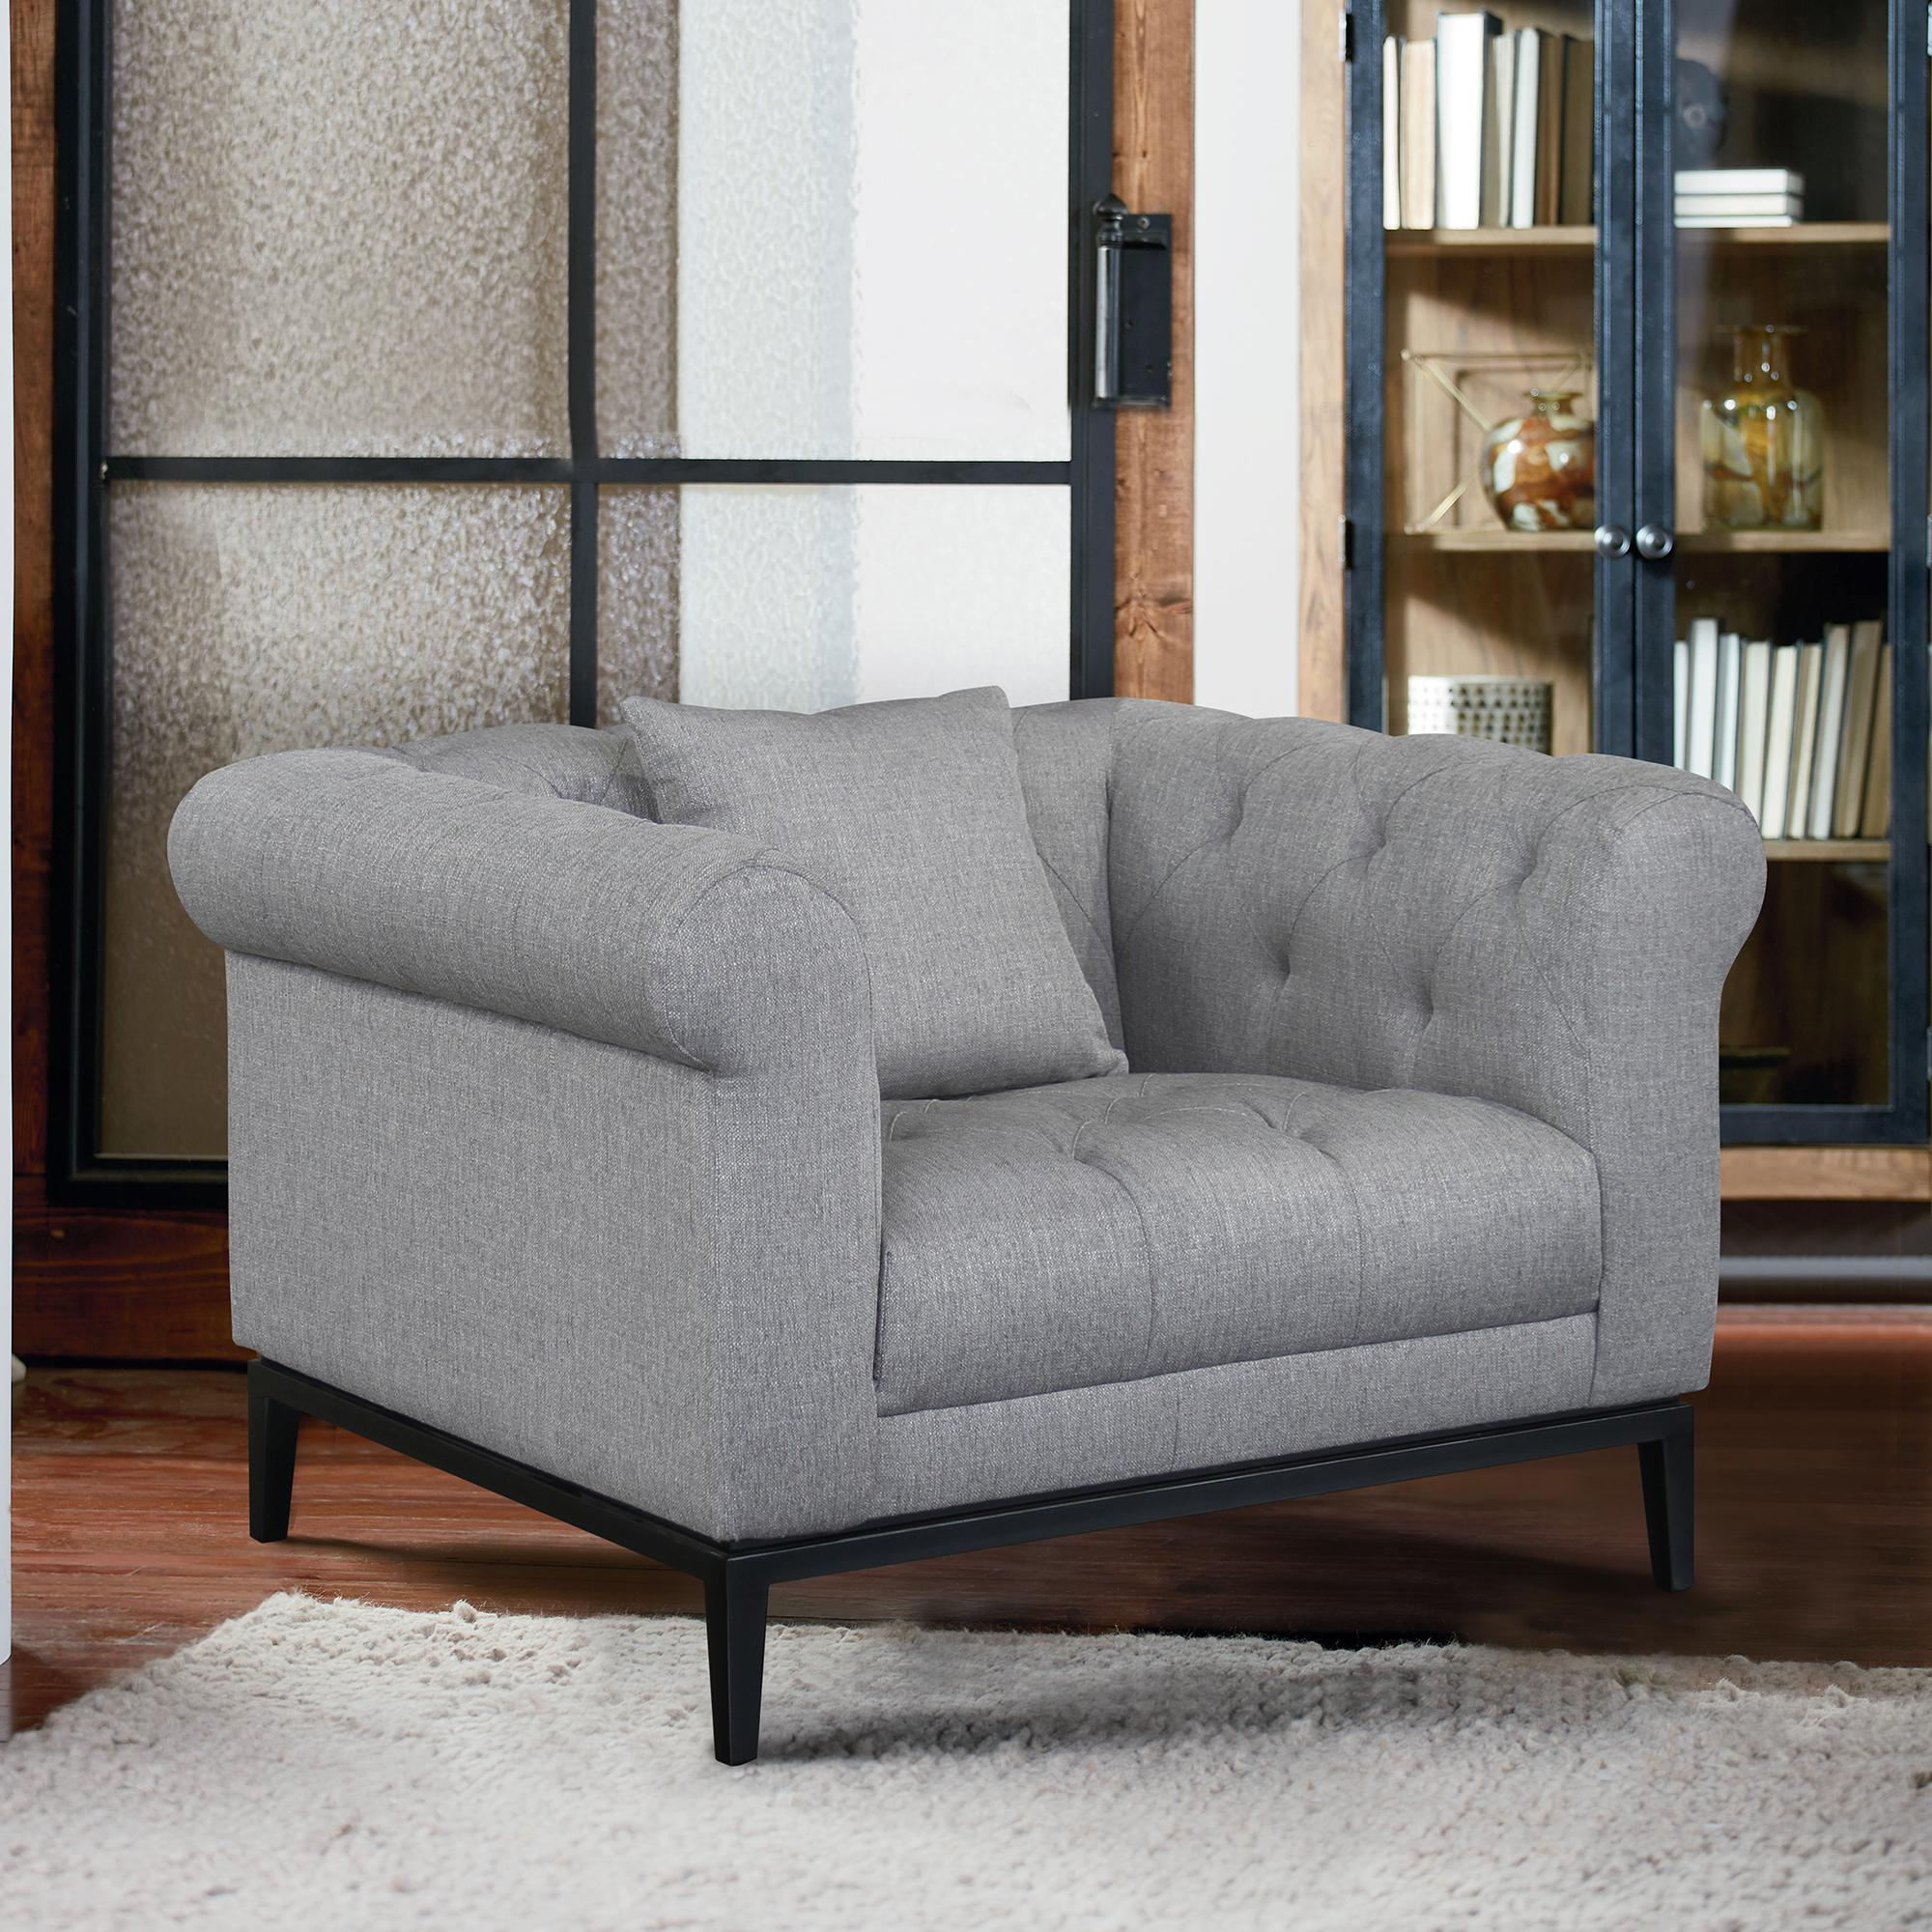 Armen Living Glamour Contemporary Chair with Black Iron Finish Base and Grey Fabric